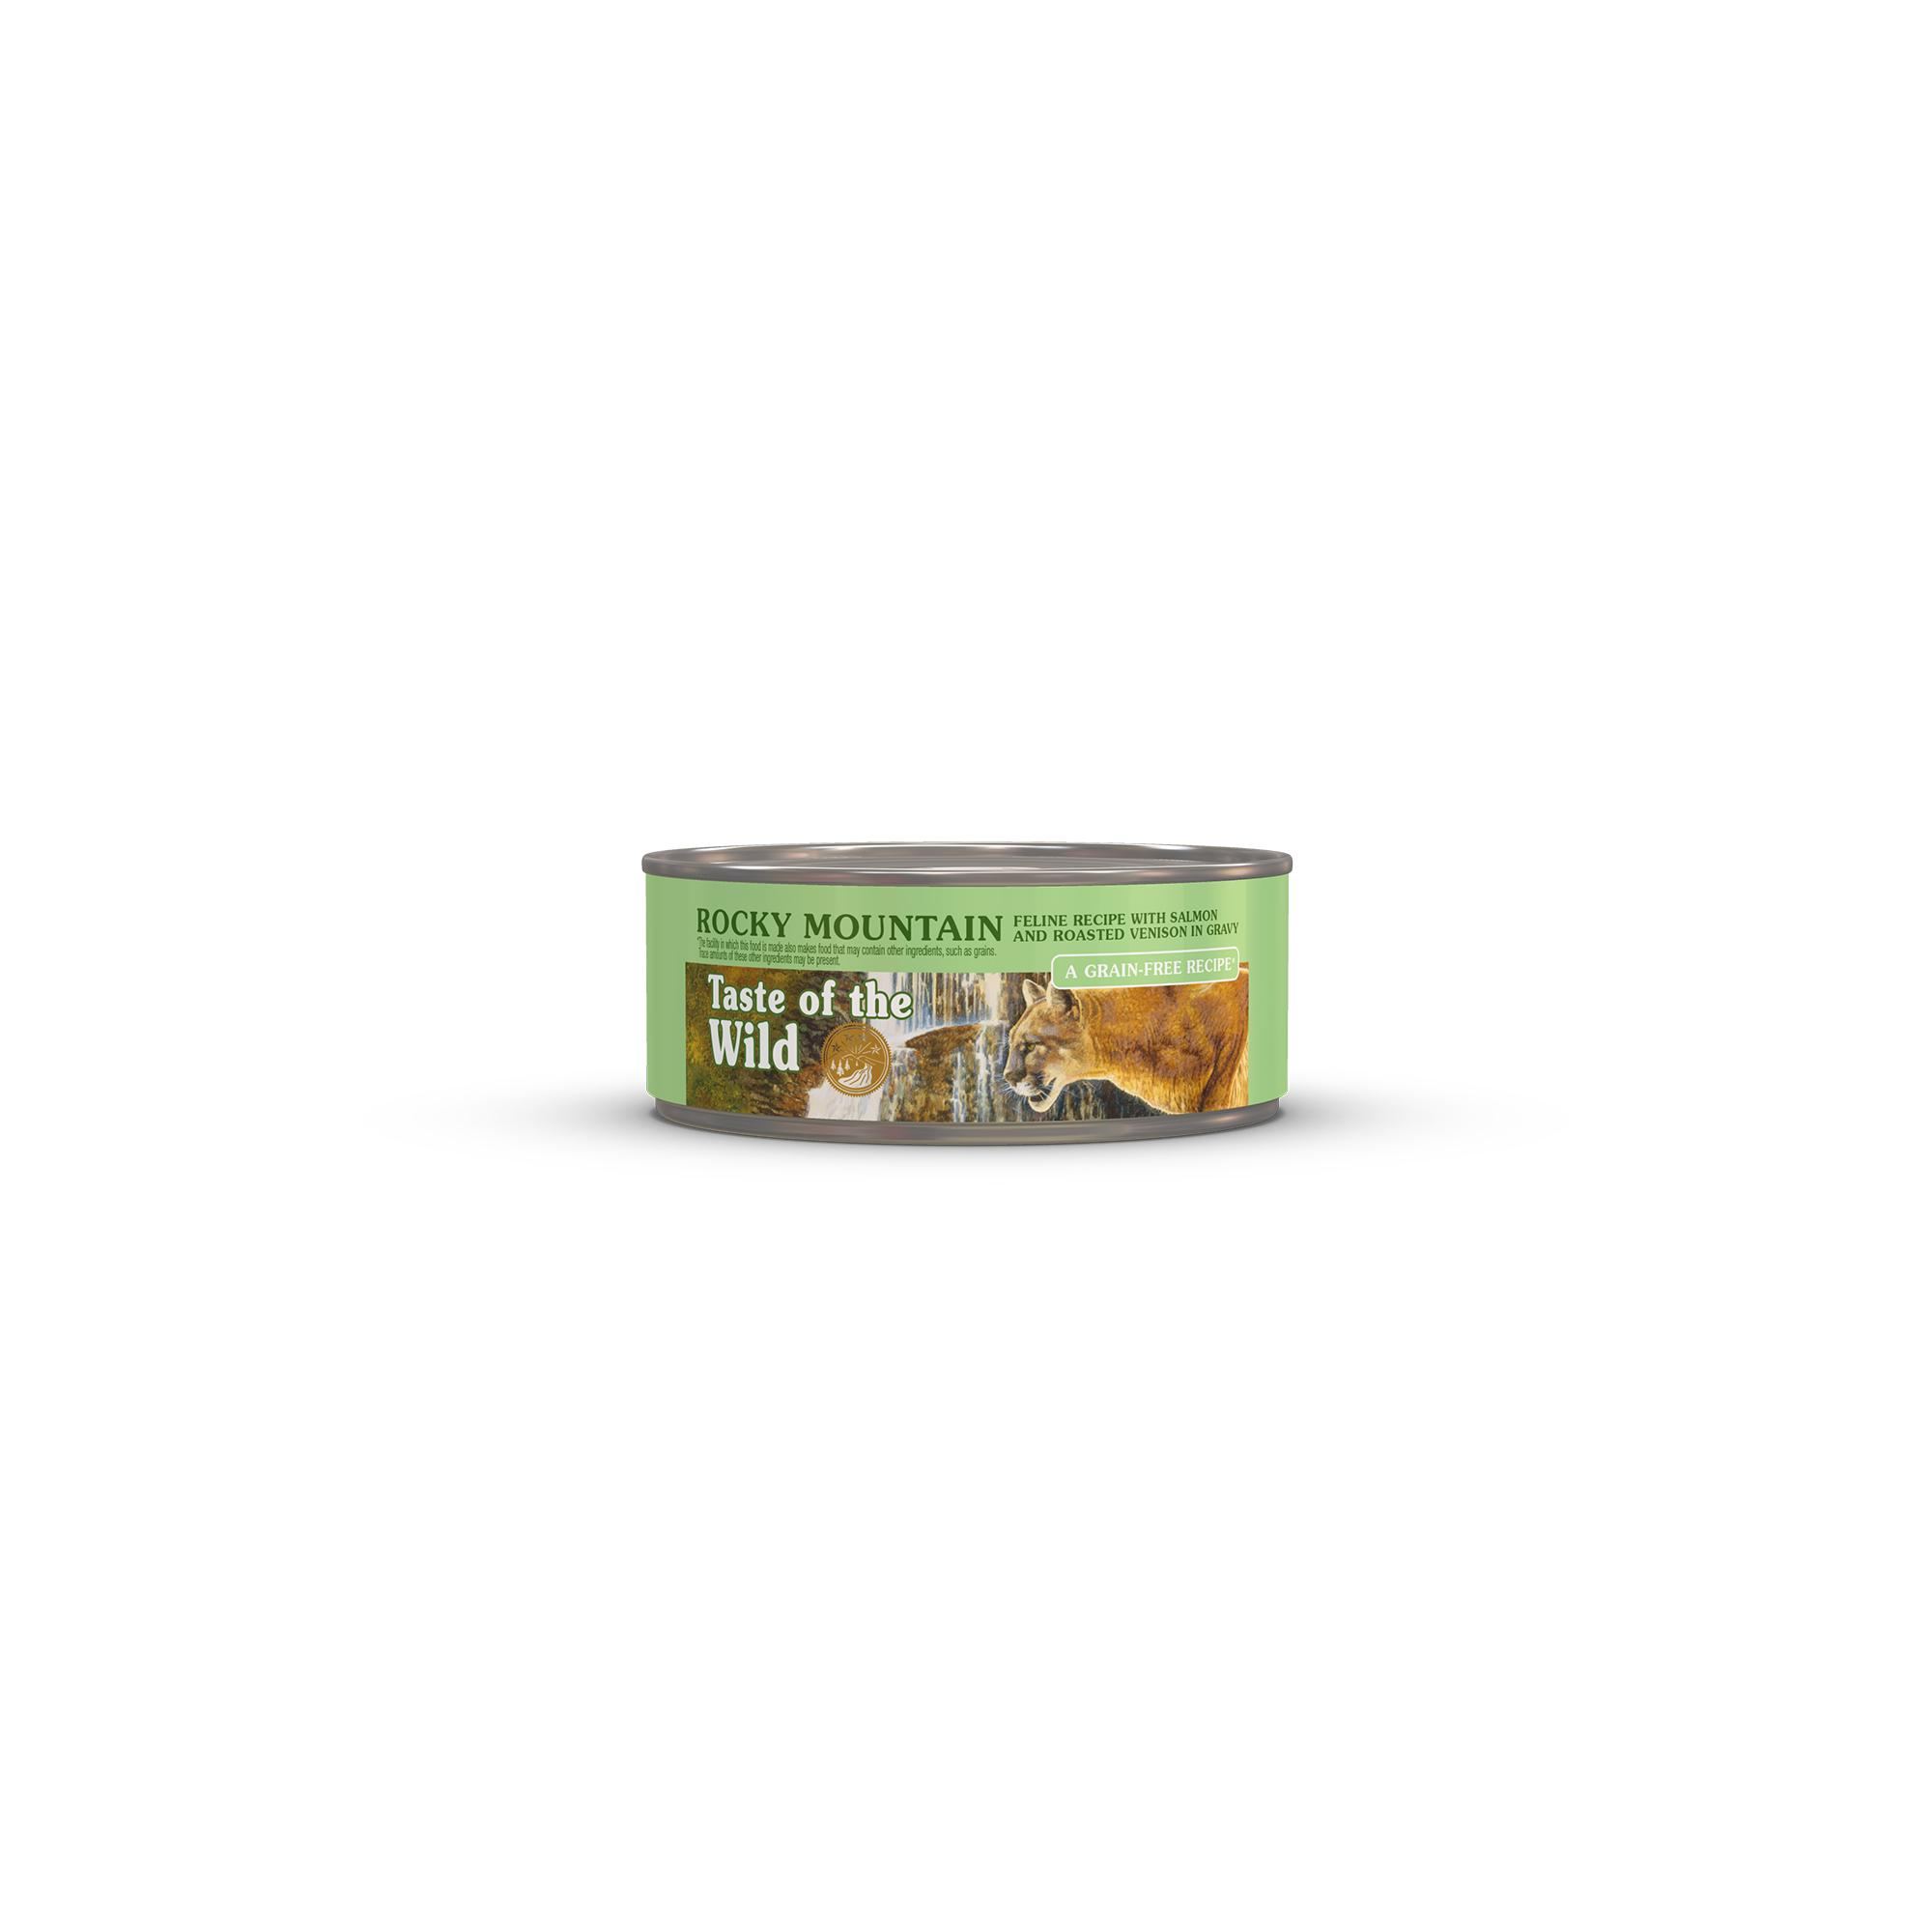 Taste of the Wild Rocky Mountain Grain-Free Canned Cat Food, 5.5-oz, case of 24